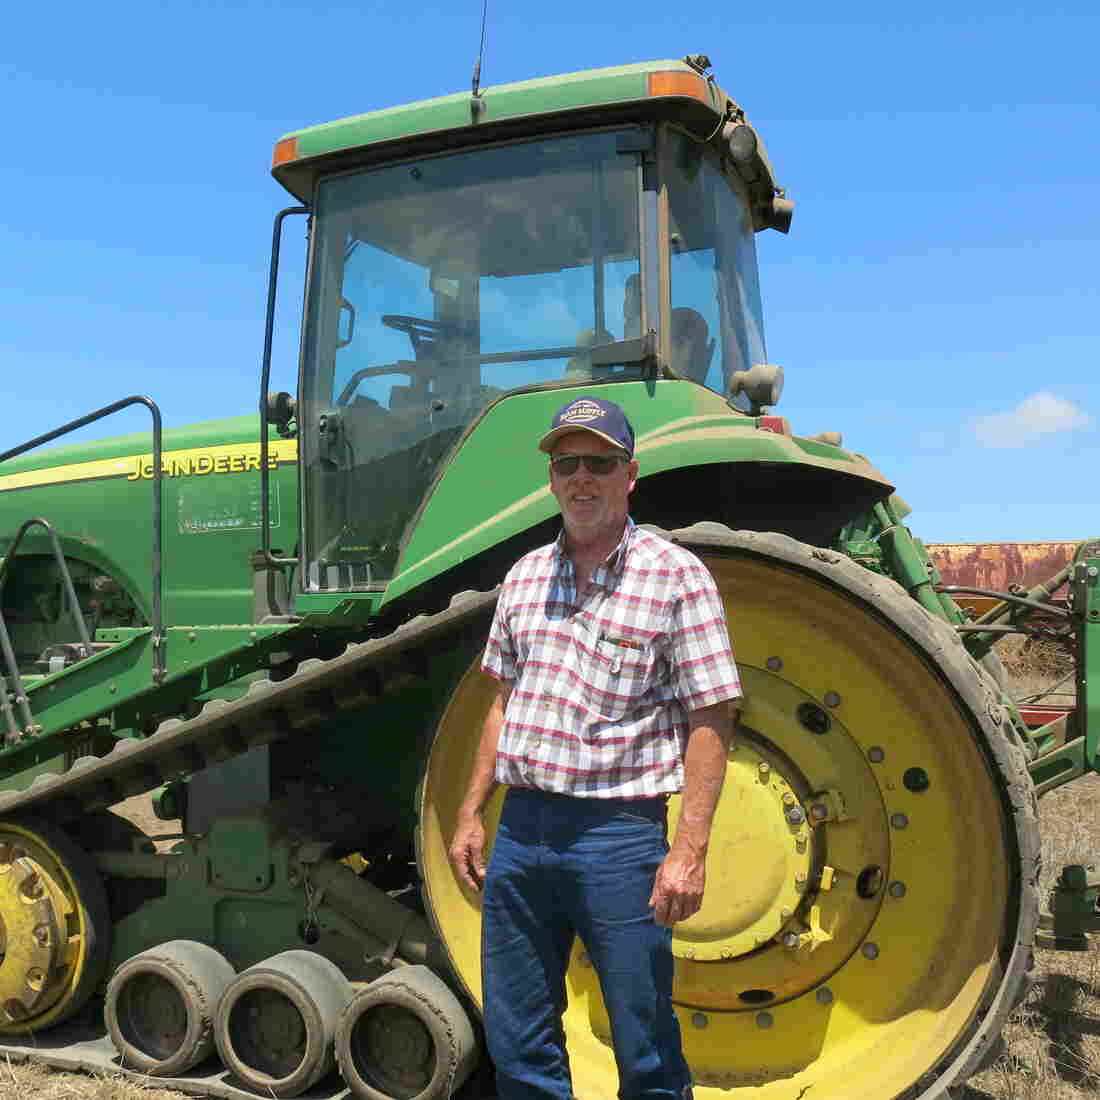 DIY Tractor Repair Runs Afoul Of Copyright Law